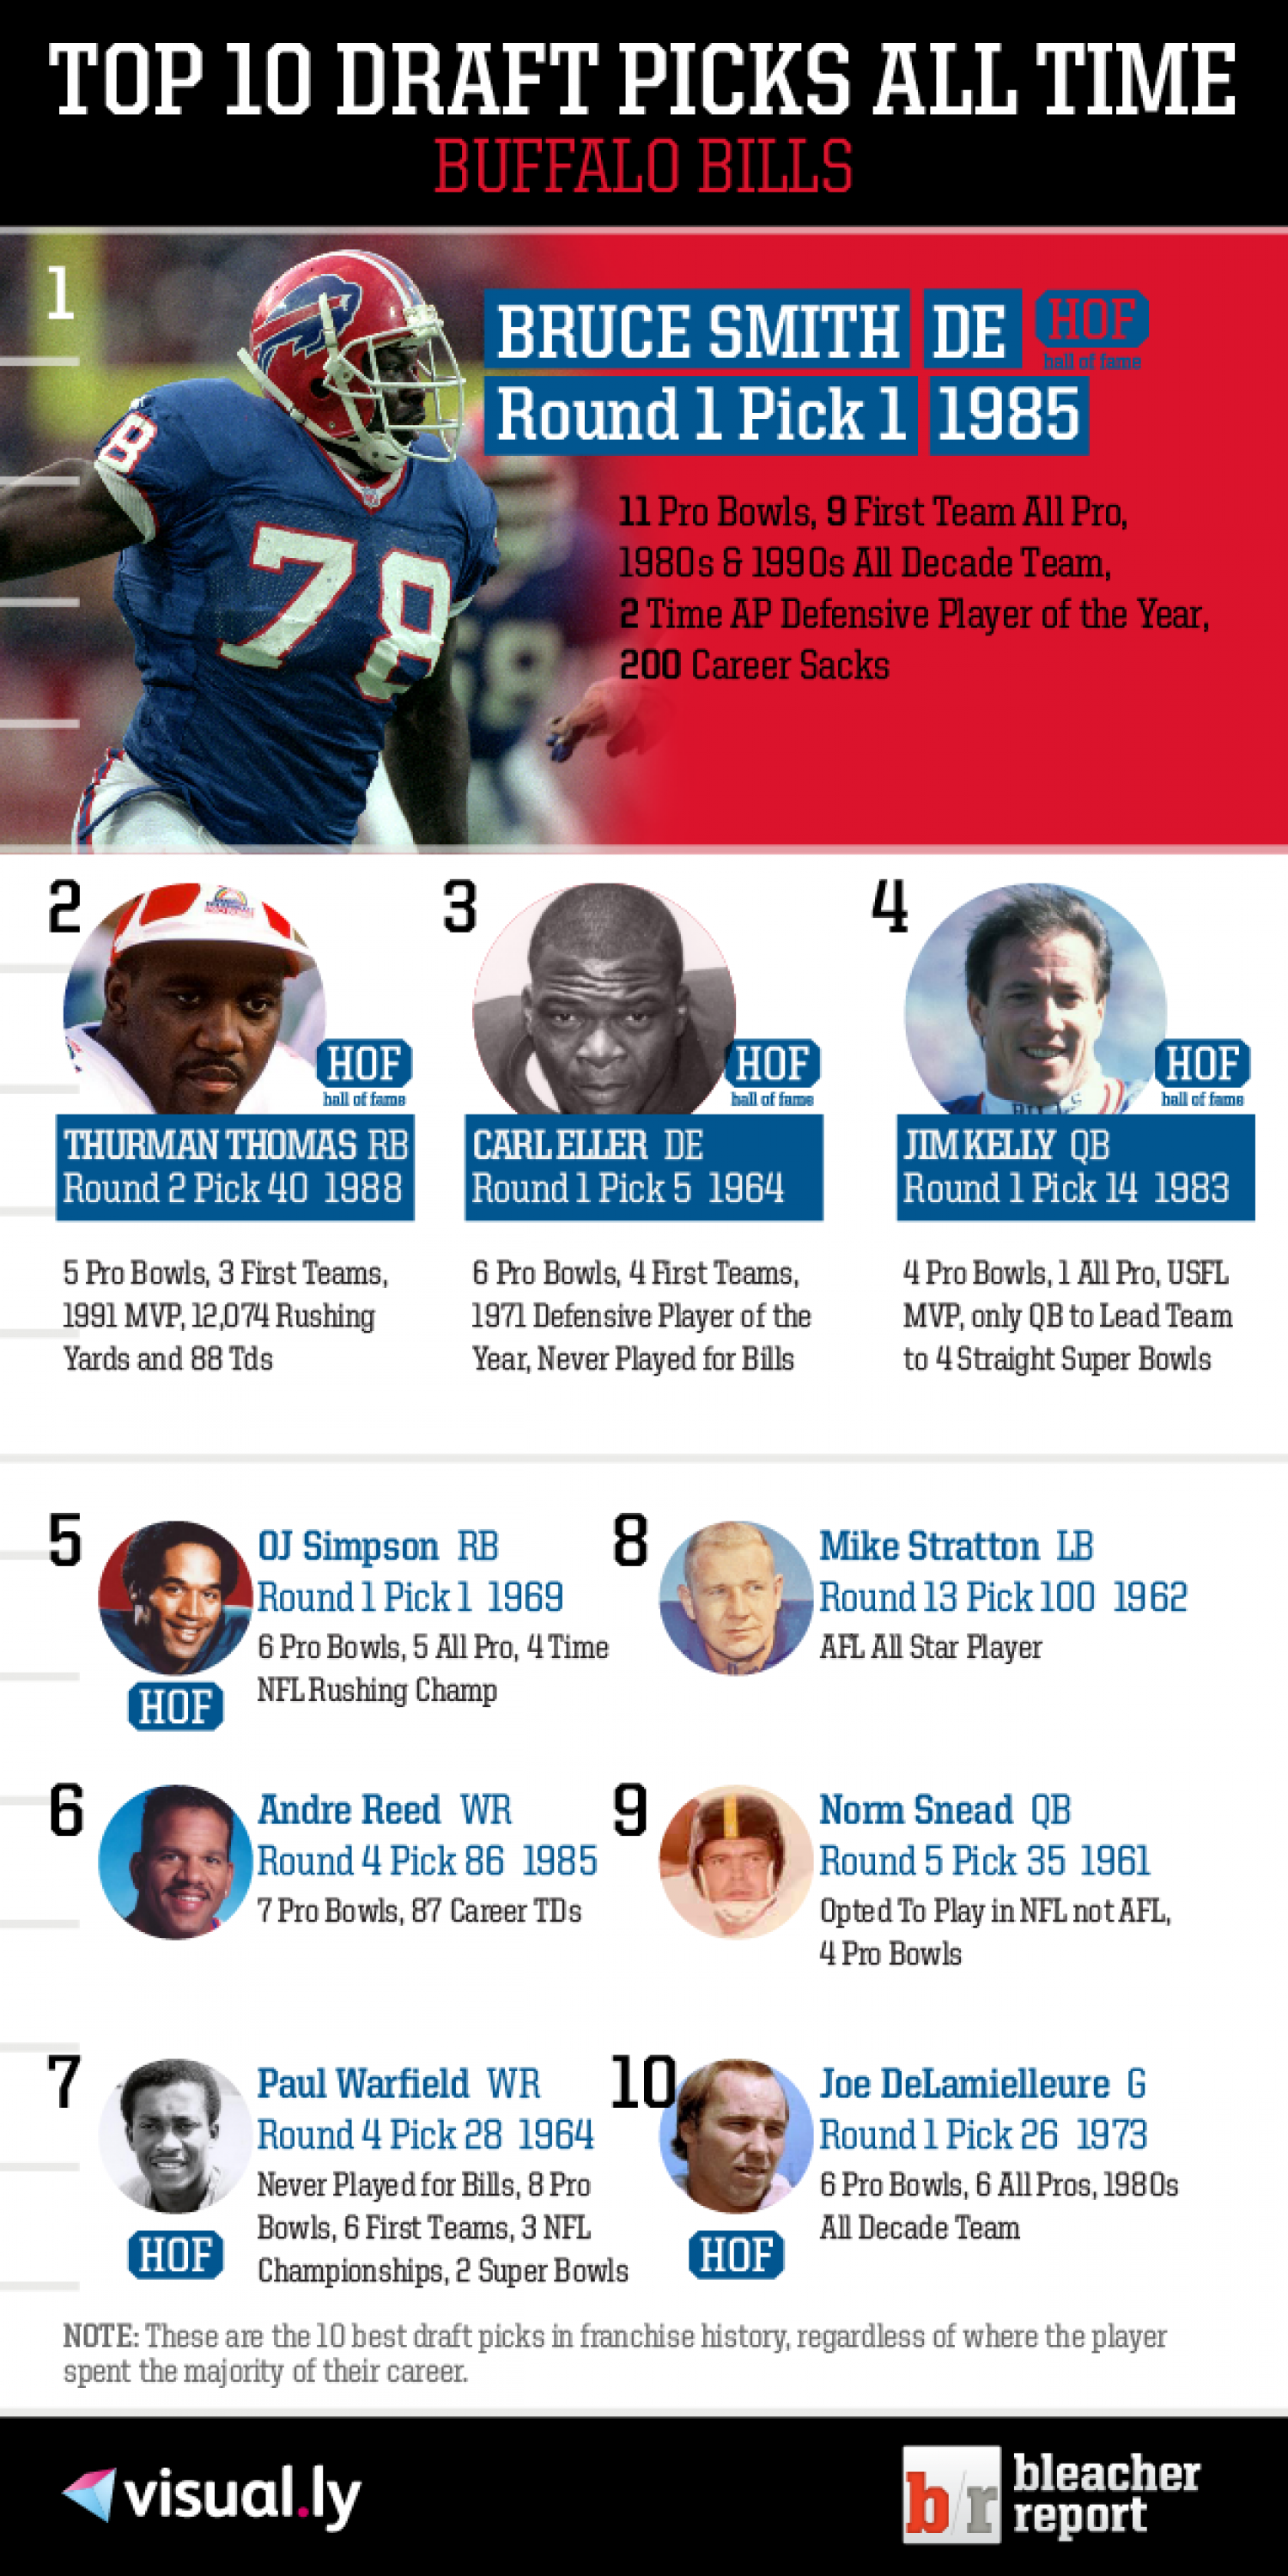 Top 10 Draft Picks of All Time: Buffalo Bills Infographic